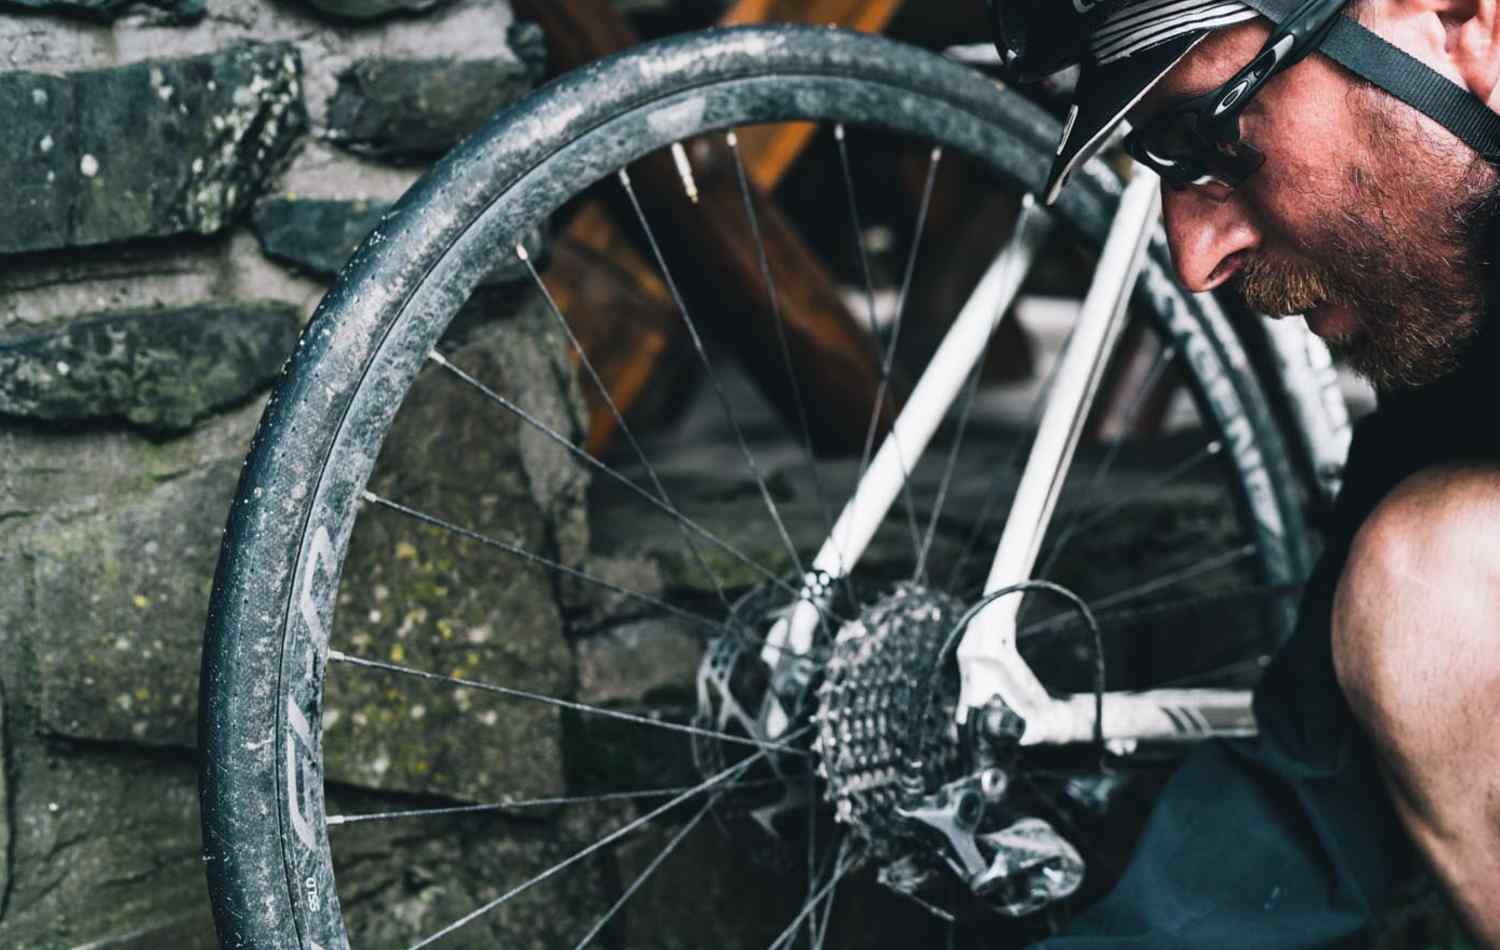 A wide road tire, covered in mud is inspected by the rider